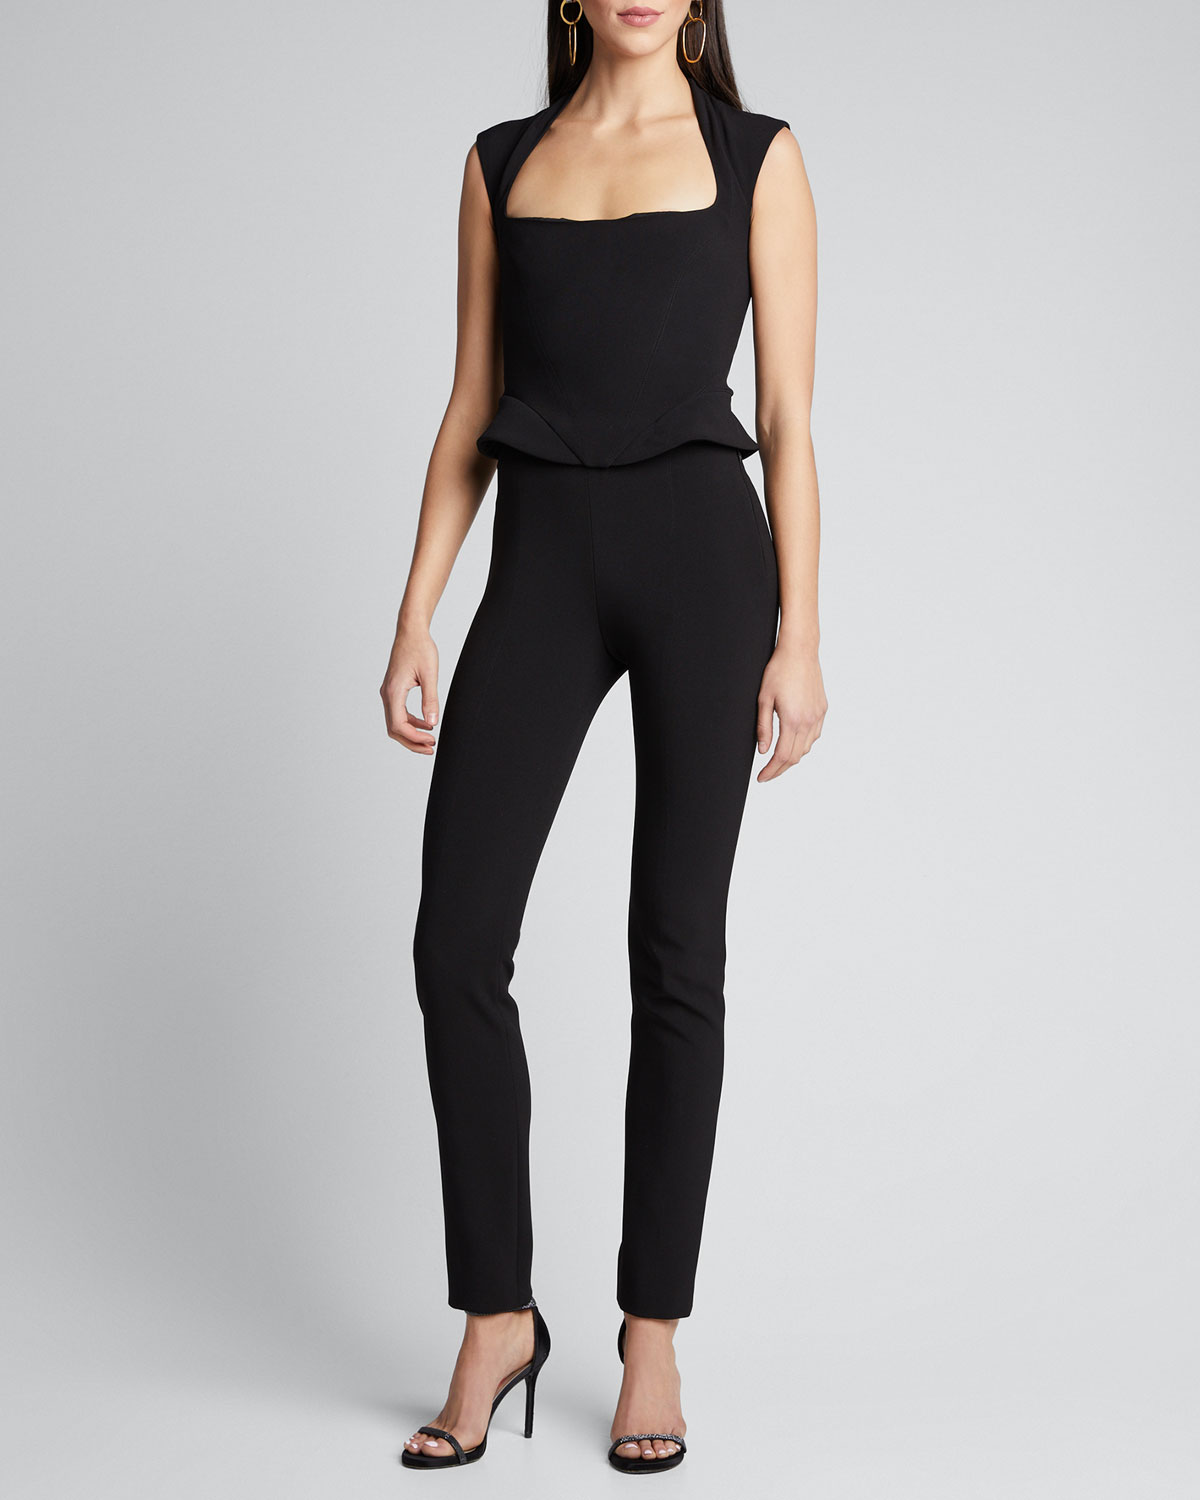 Mugler Pants HIGH-WAIST CREPE PANTS